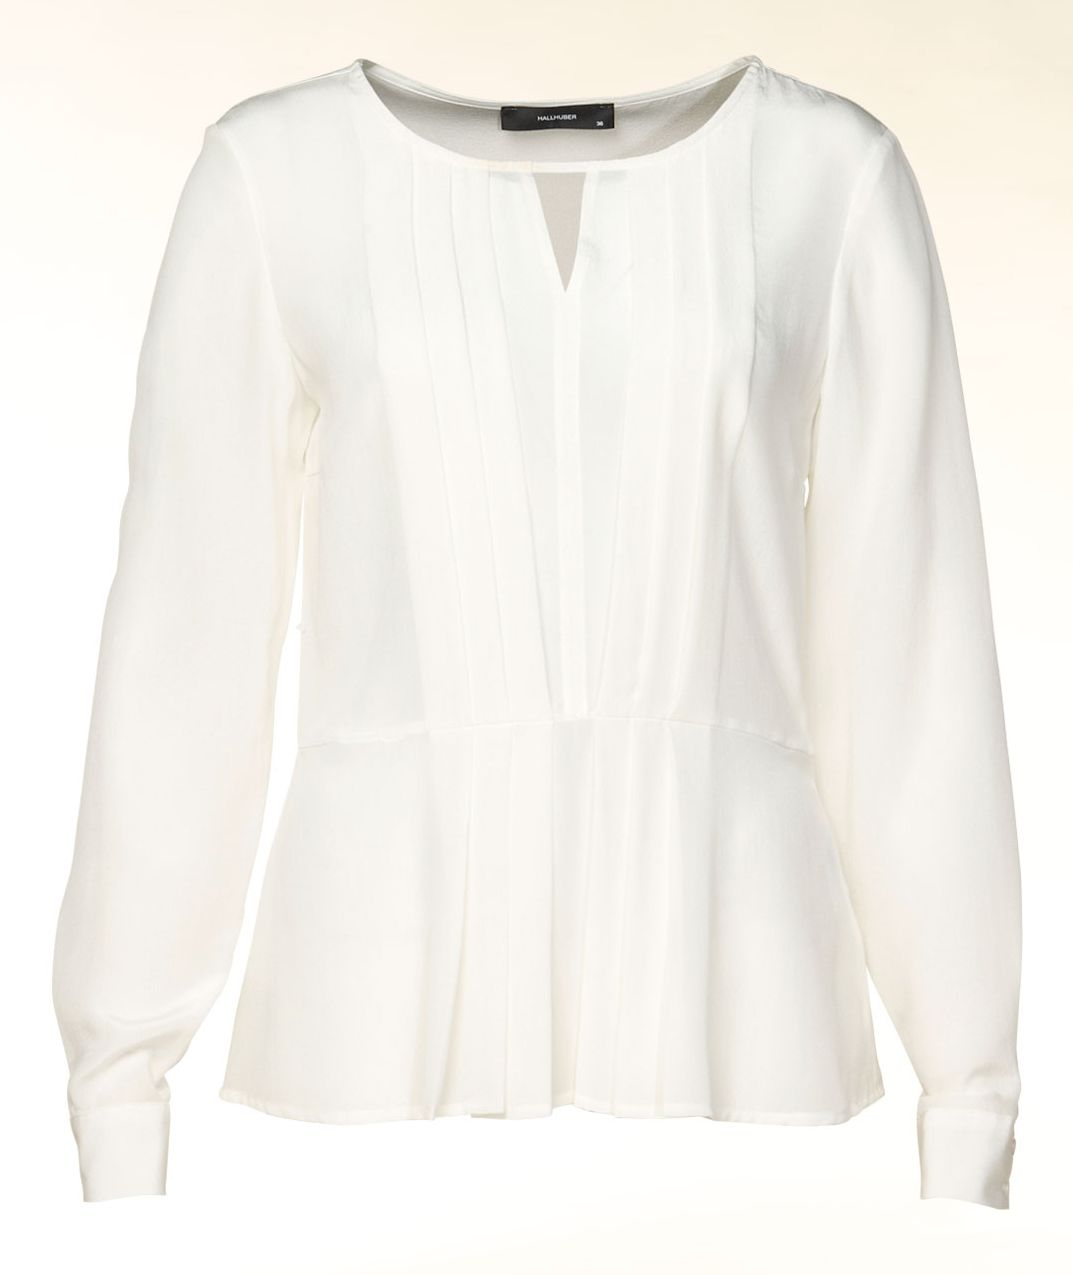 Pleat front peplum blouse